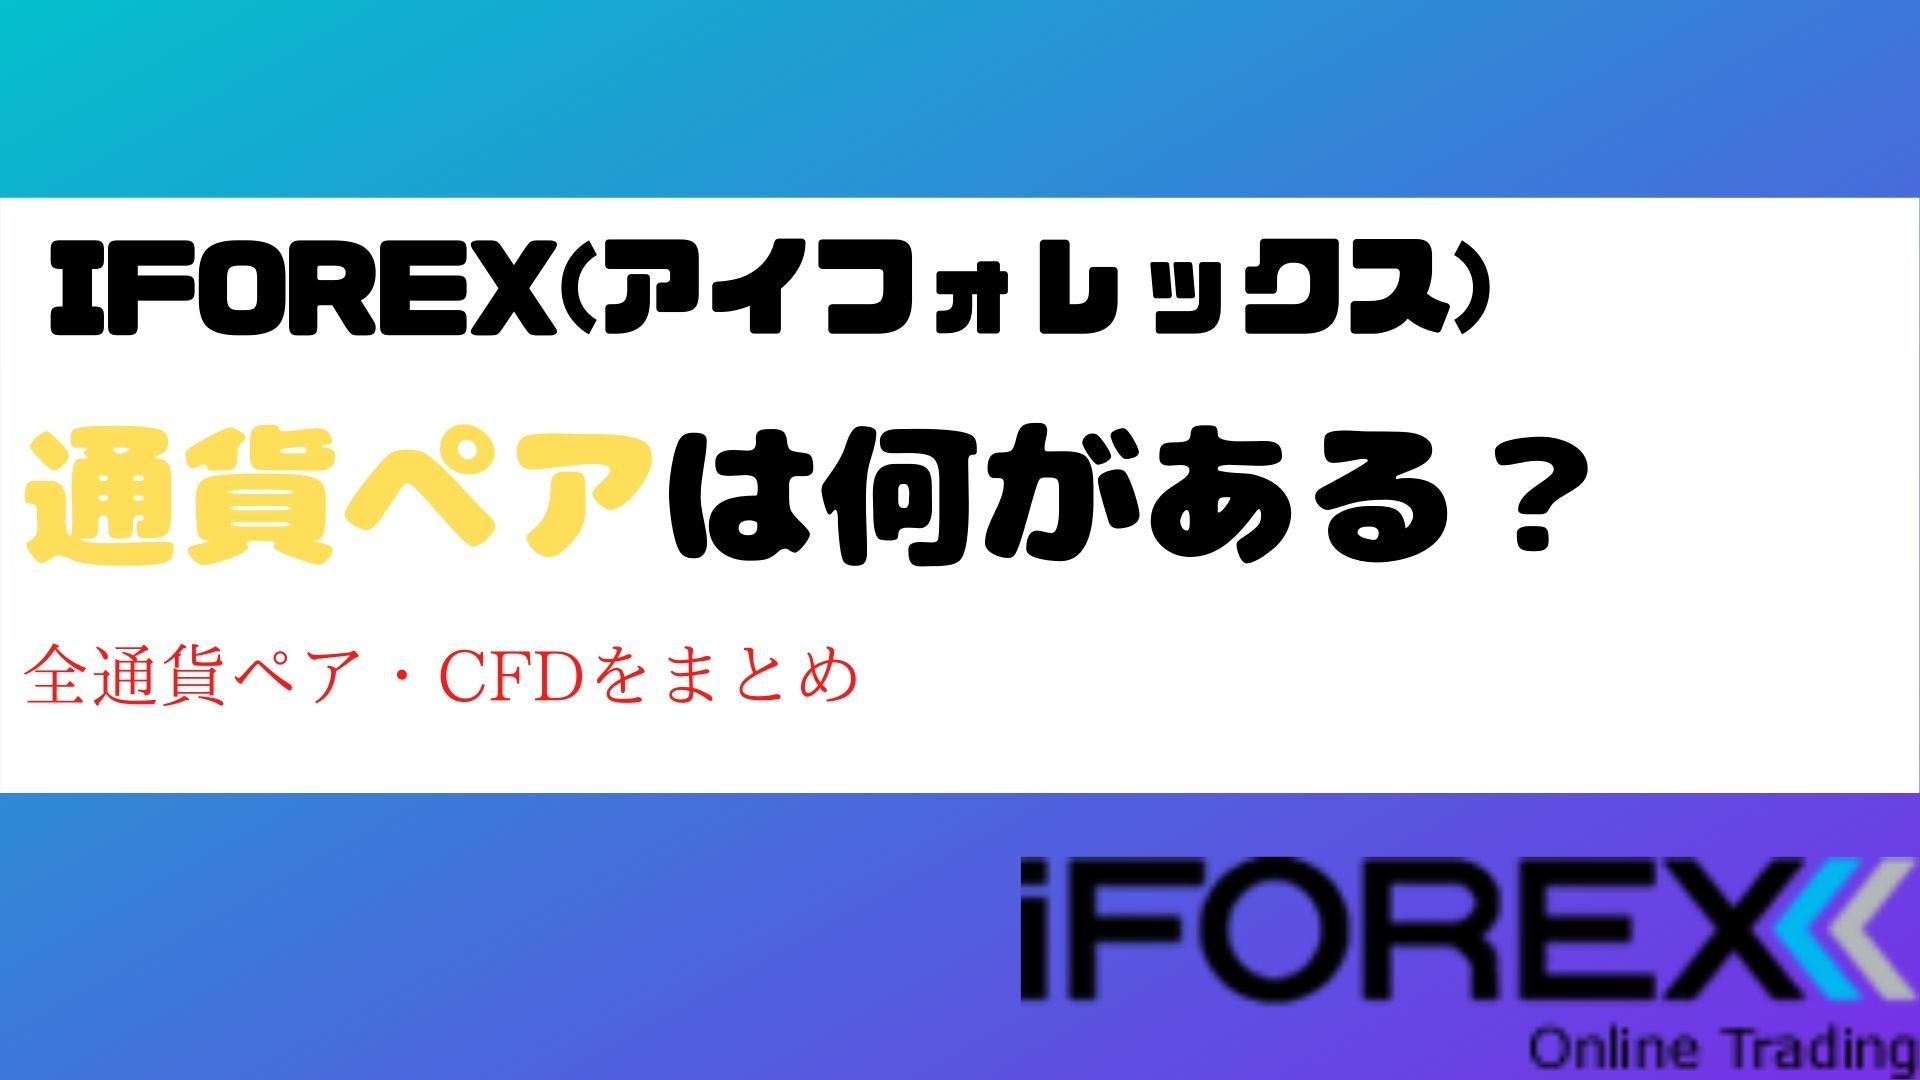 iforex-currencypair-title